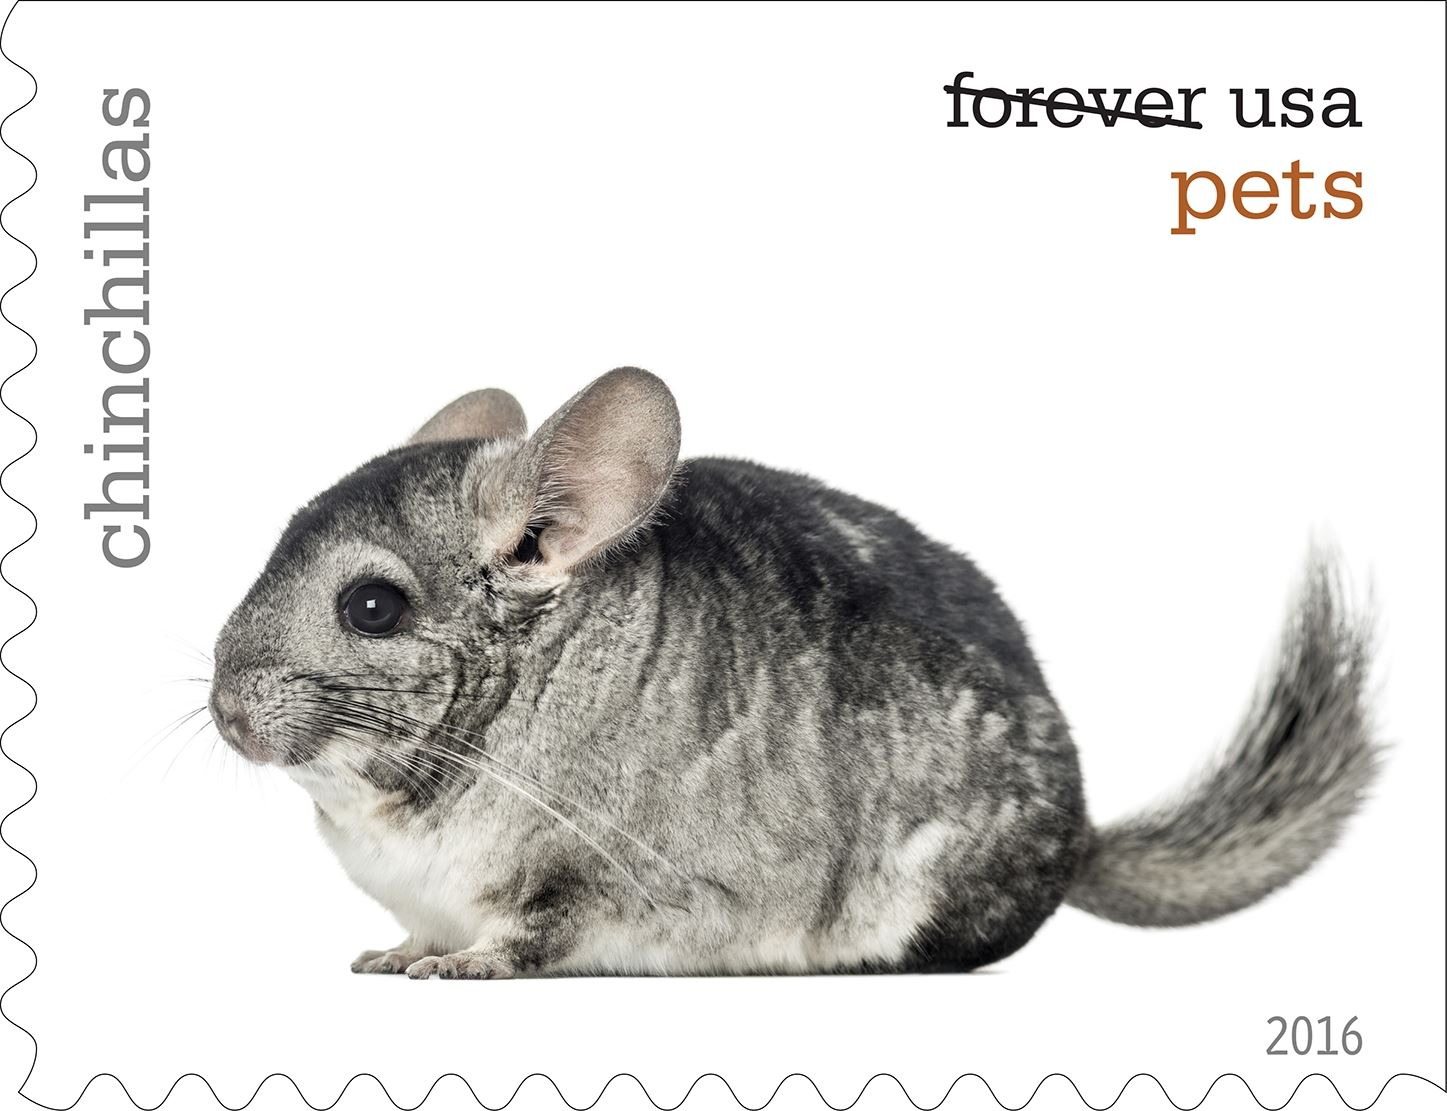 2-0_USPS16STA004c-10 Chinchillas will be among the pets celebrated in an upcoming set of Forever stamps issued by the U.S. Postal Service.